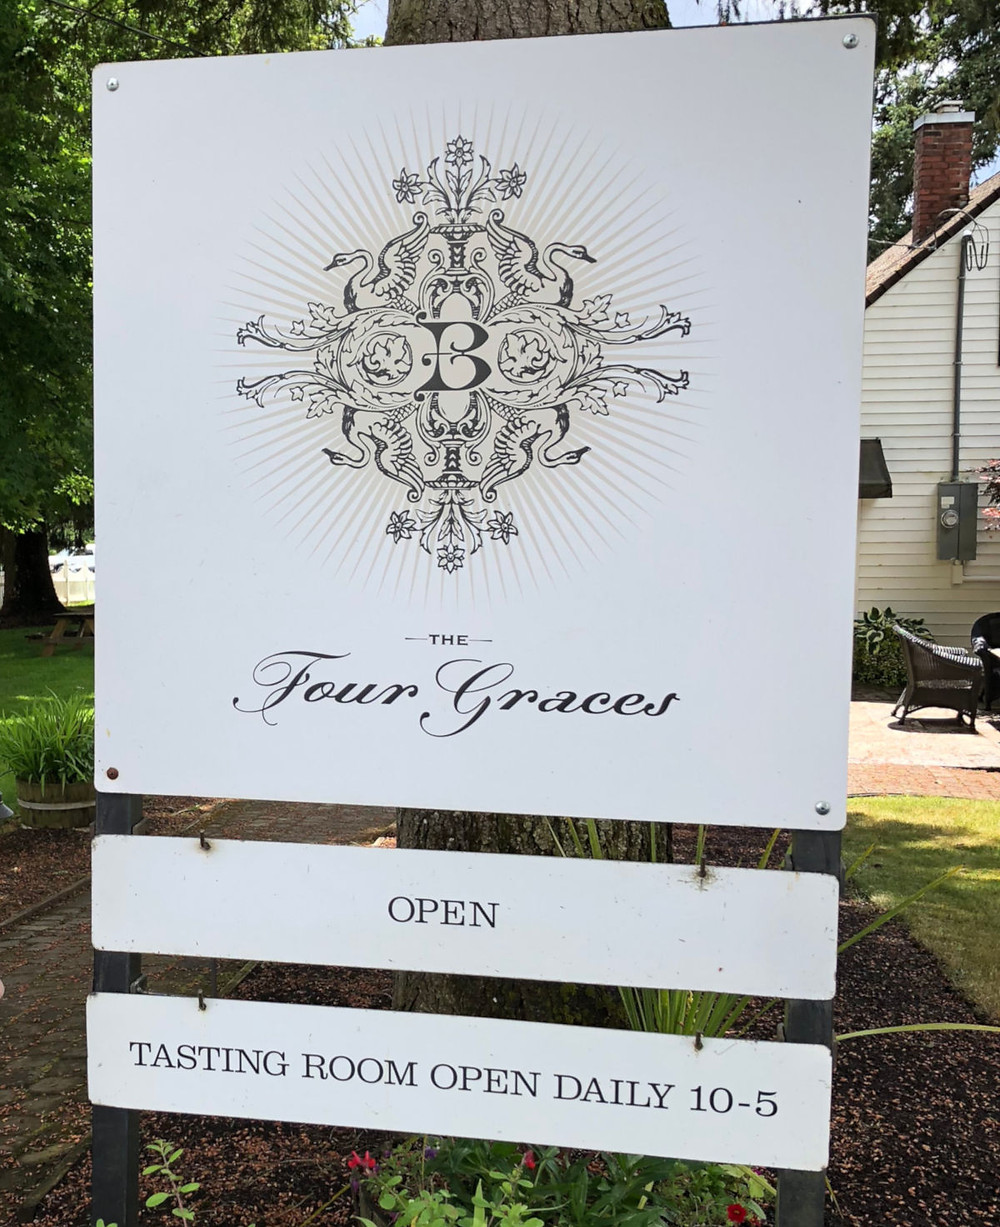 Four Graces tasting room in Willamette Valley | commongrape.com